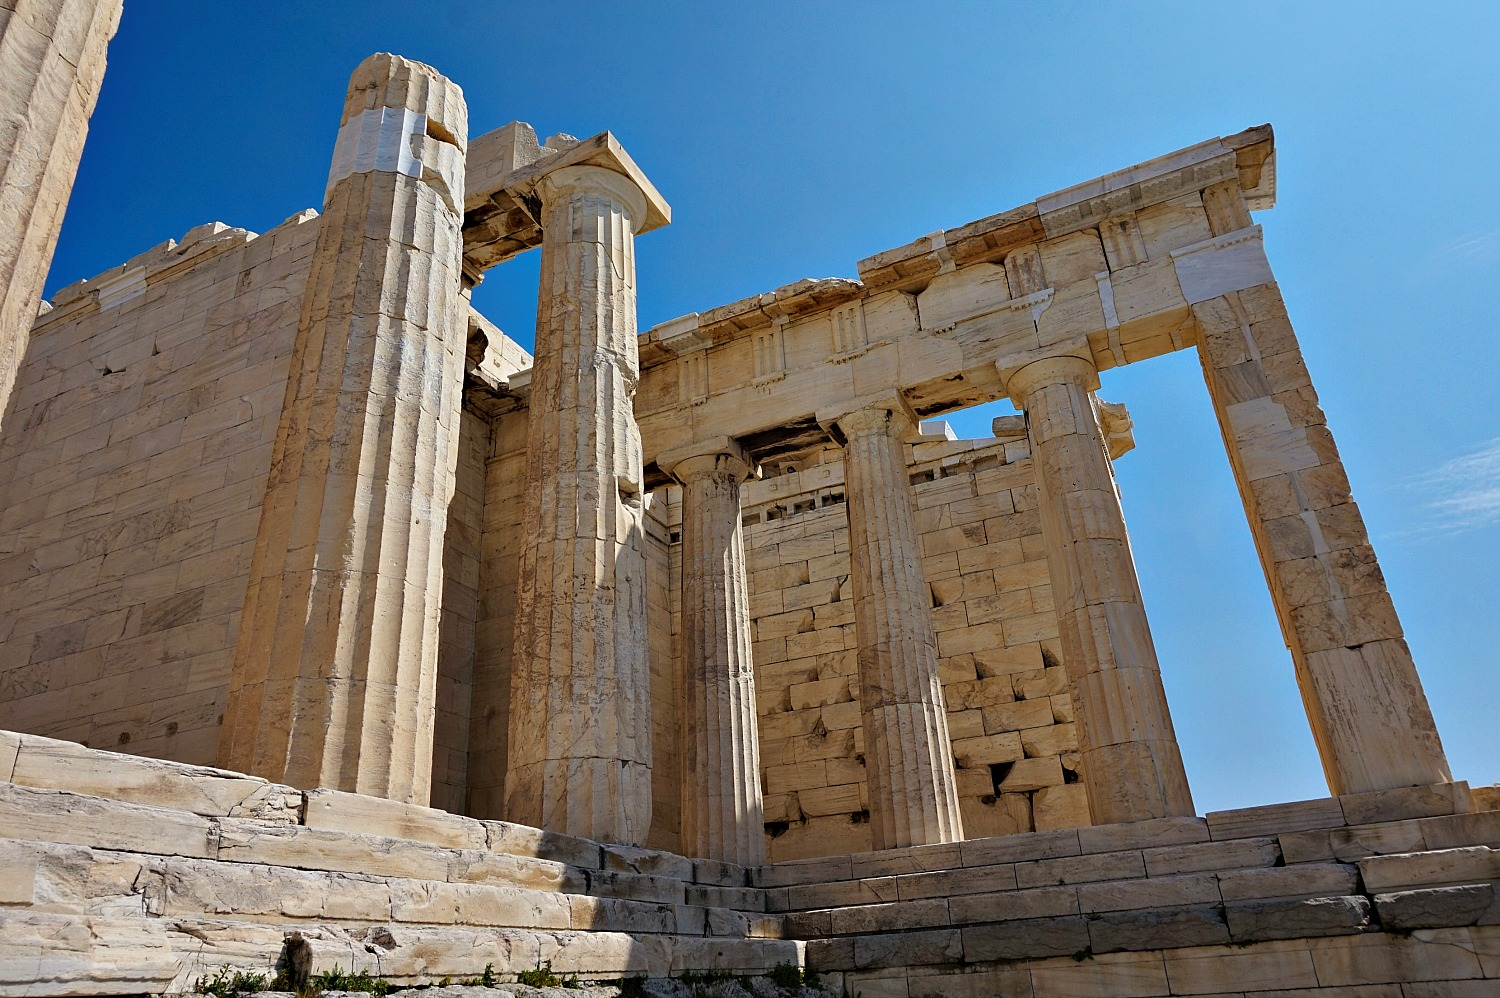 Itinerary for Athens. 2 days. The Acropolis.